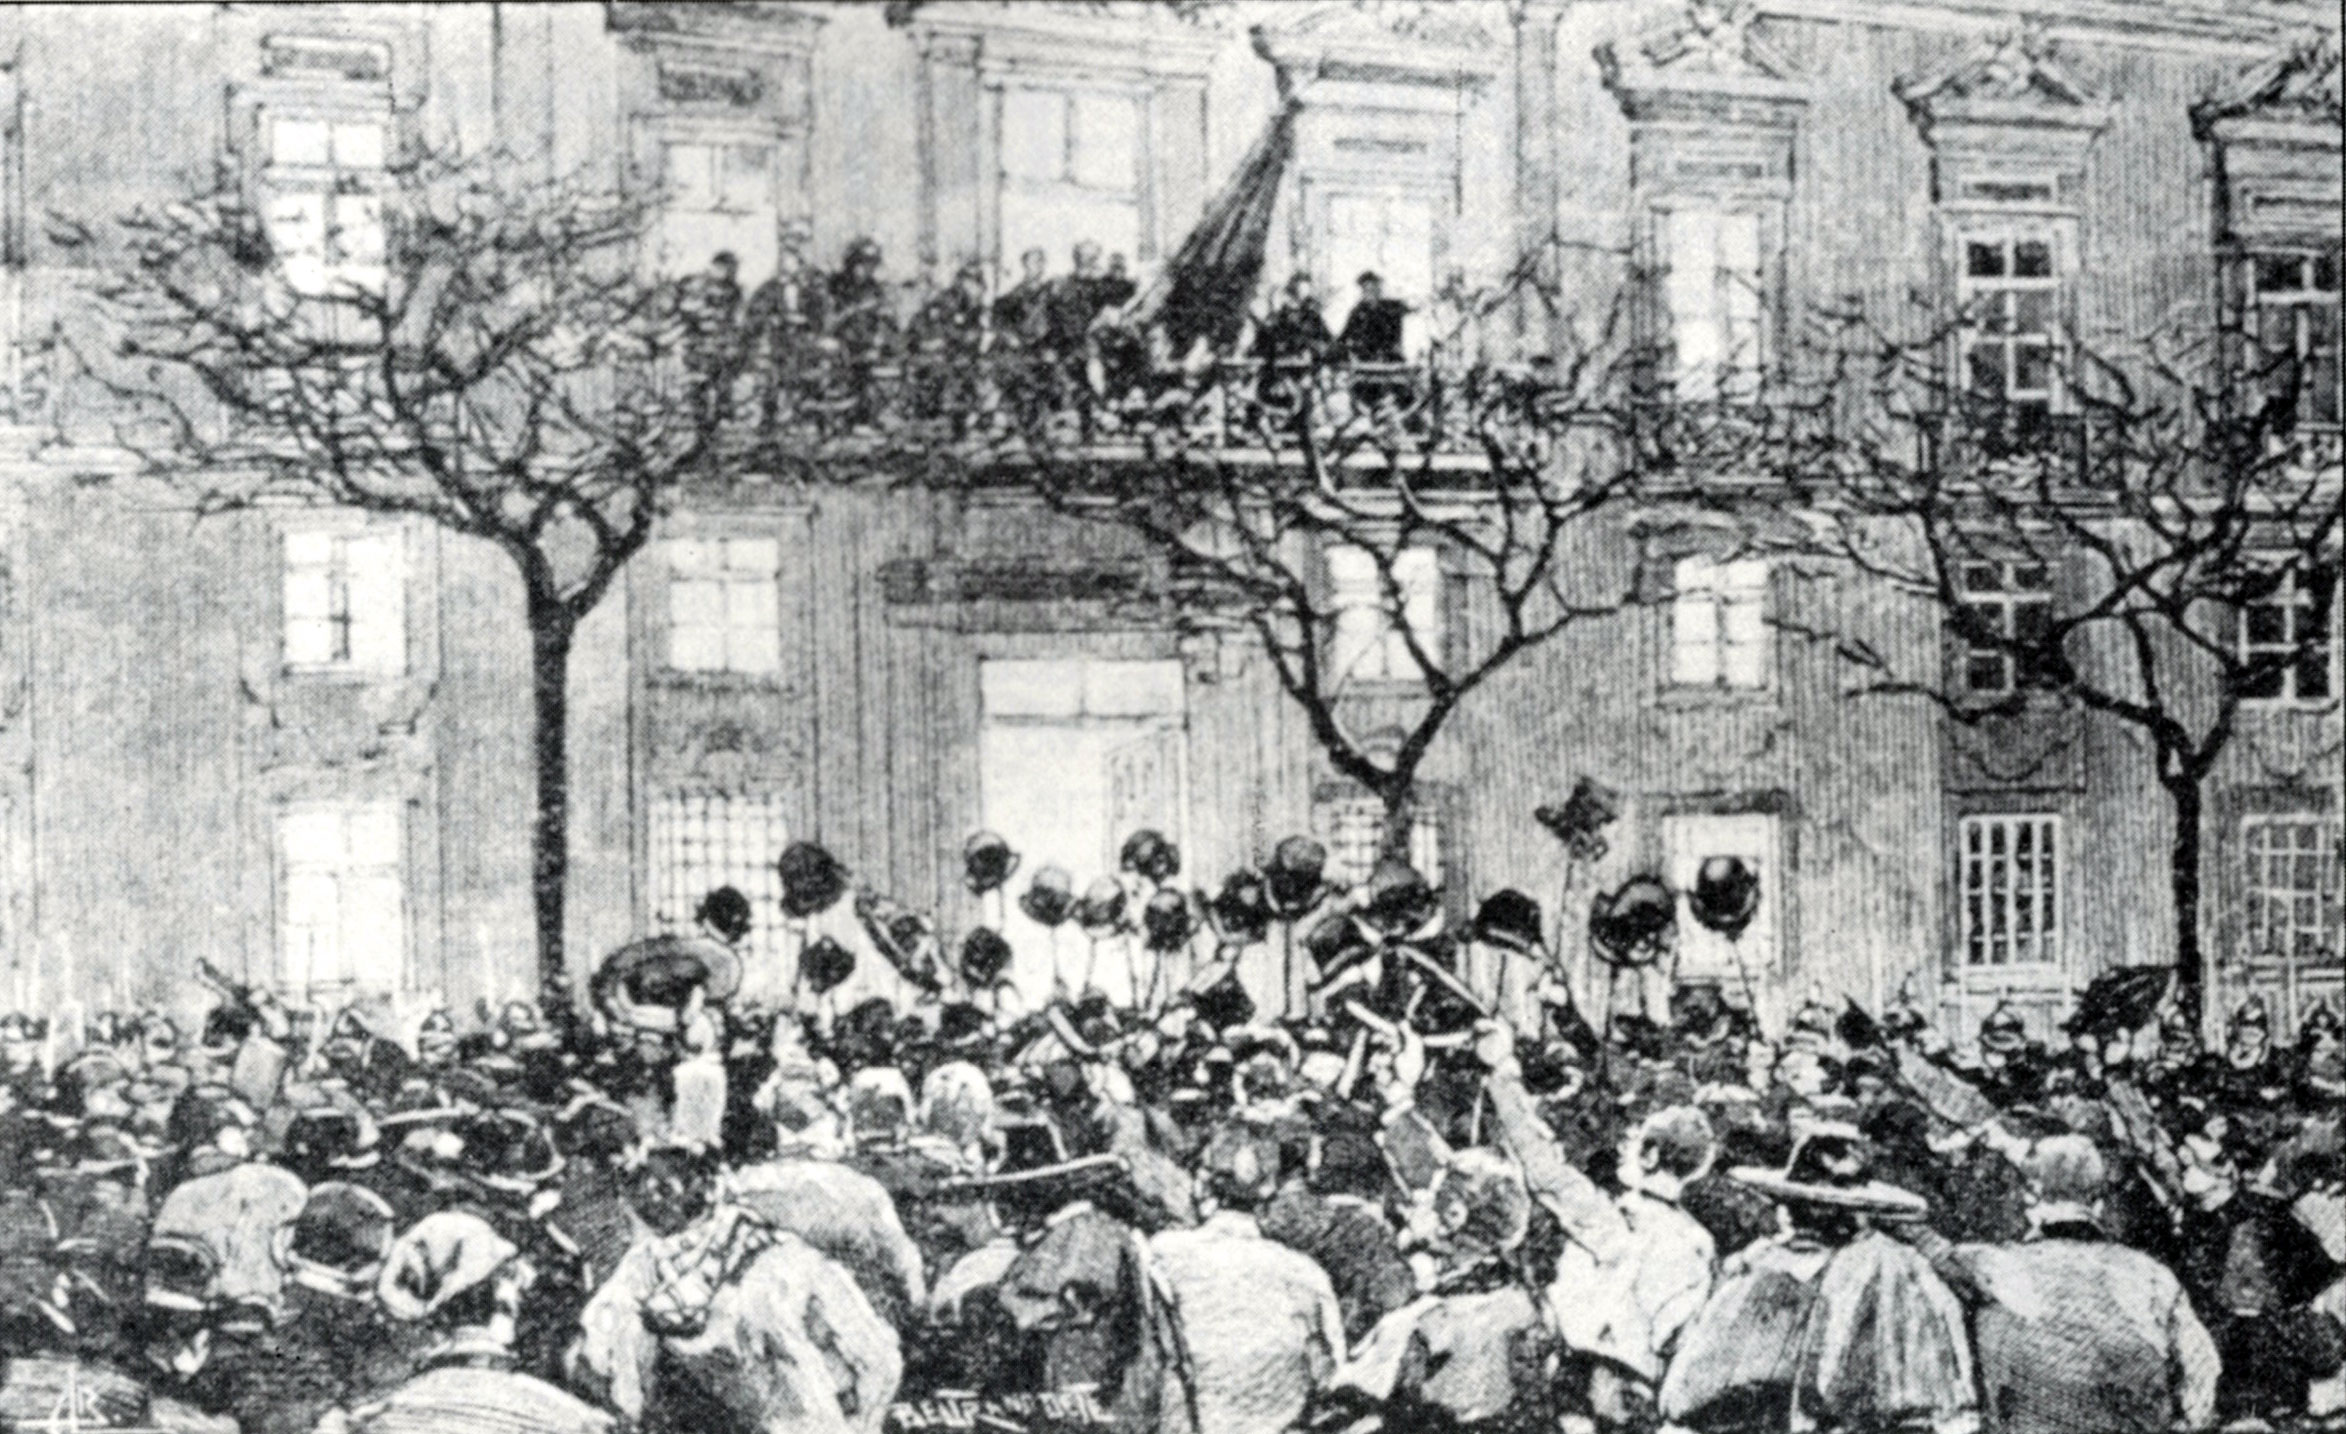 January 31, 1891 – A revolution that ended in bloodshed